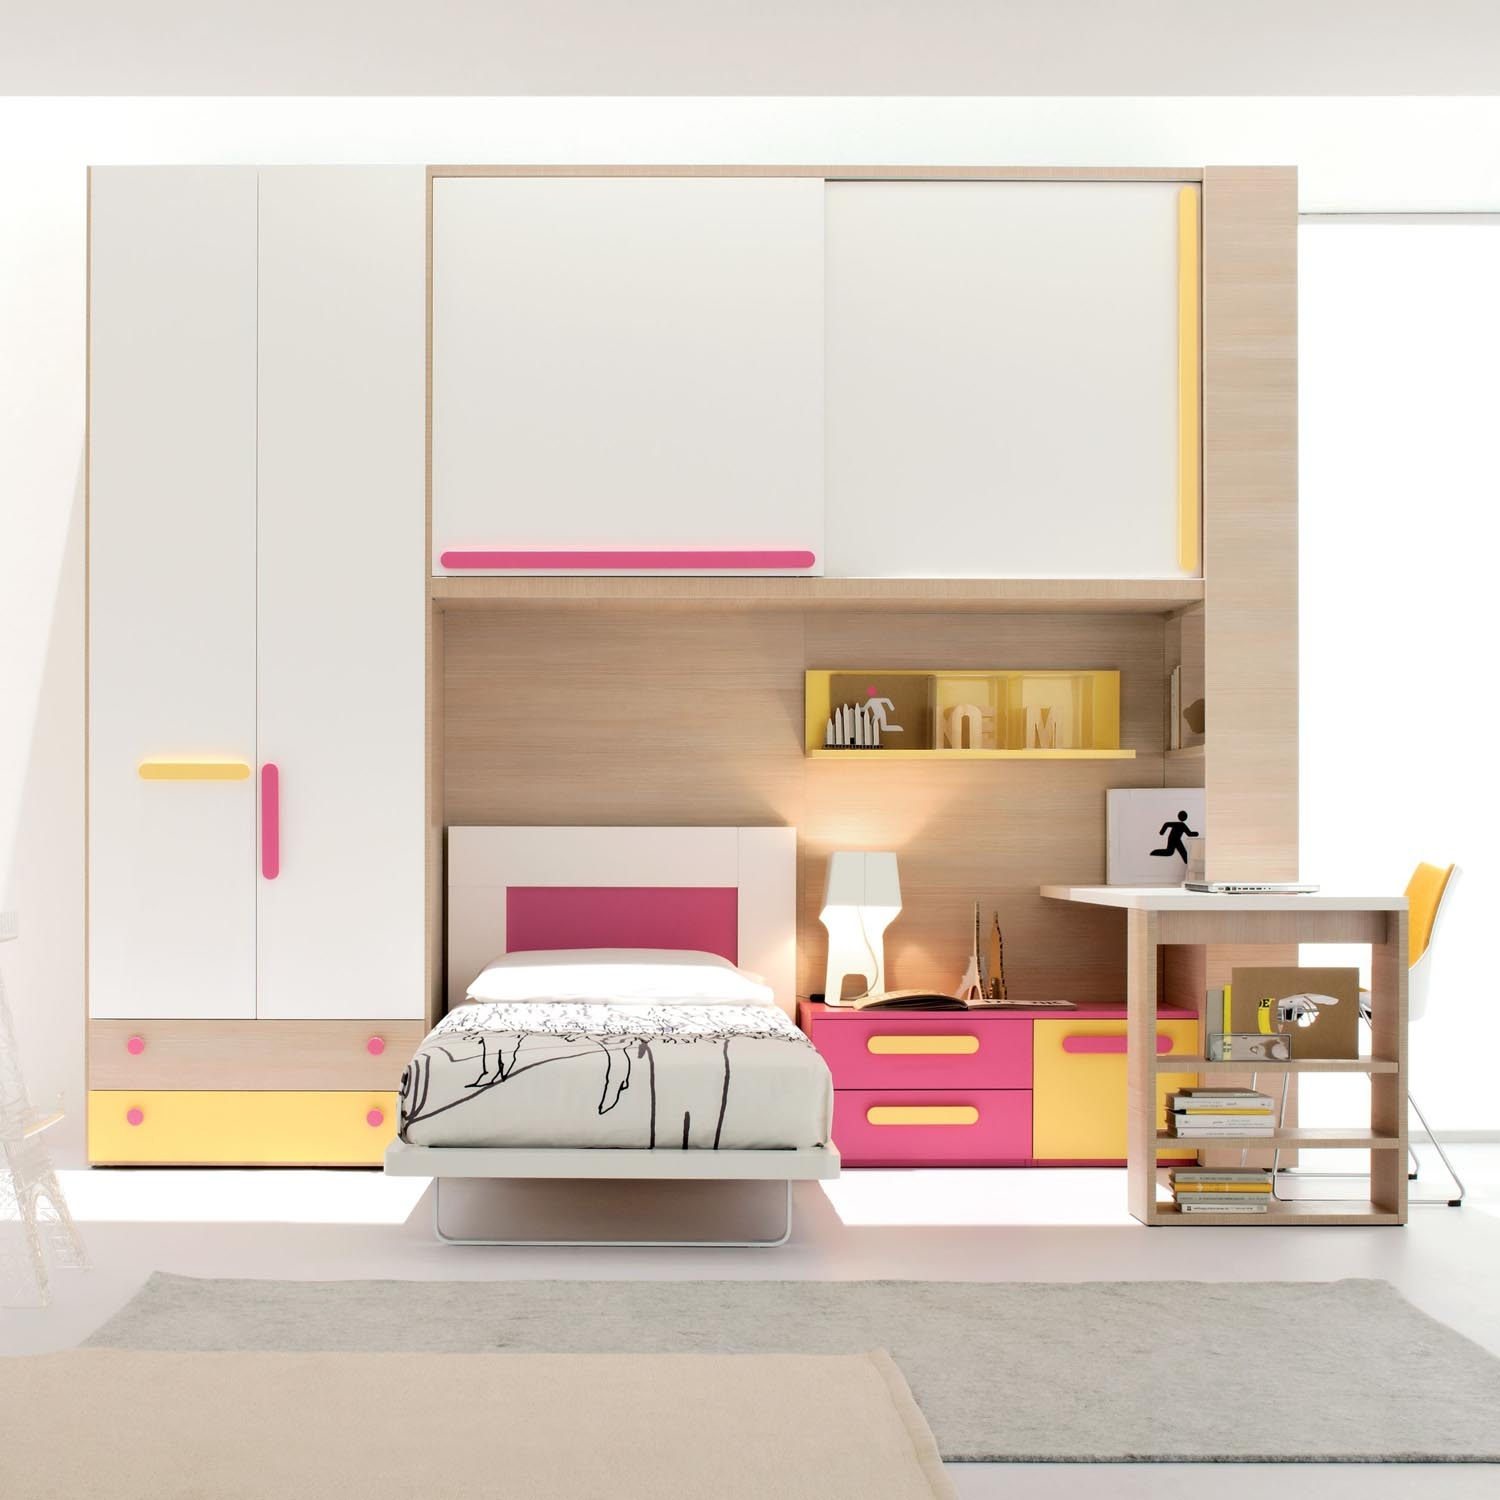 Bedroom Space Saving Ideas Design Using Creative Modern Mixed Pertaining To Space Saving Wardrobes (Image 8 of 25)